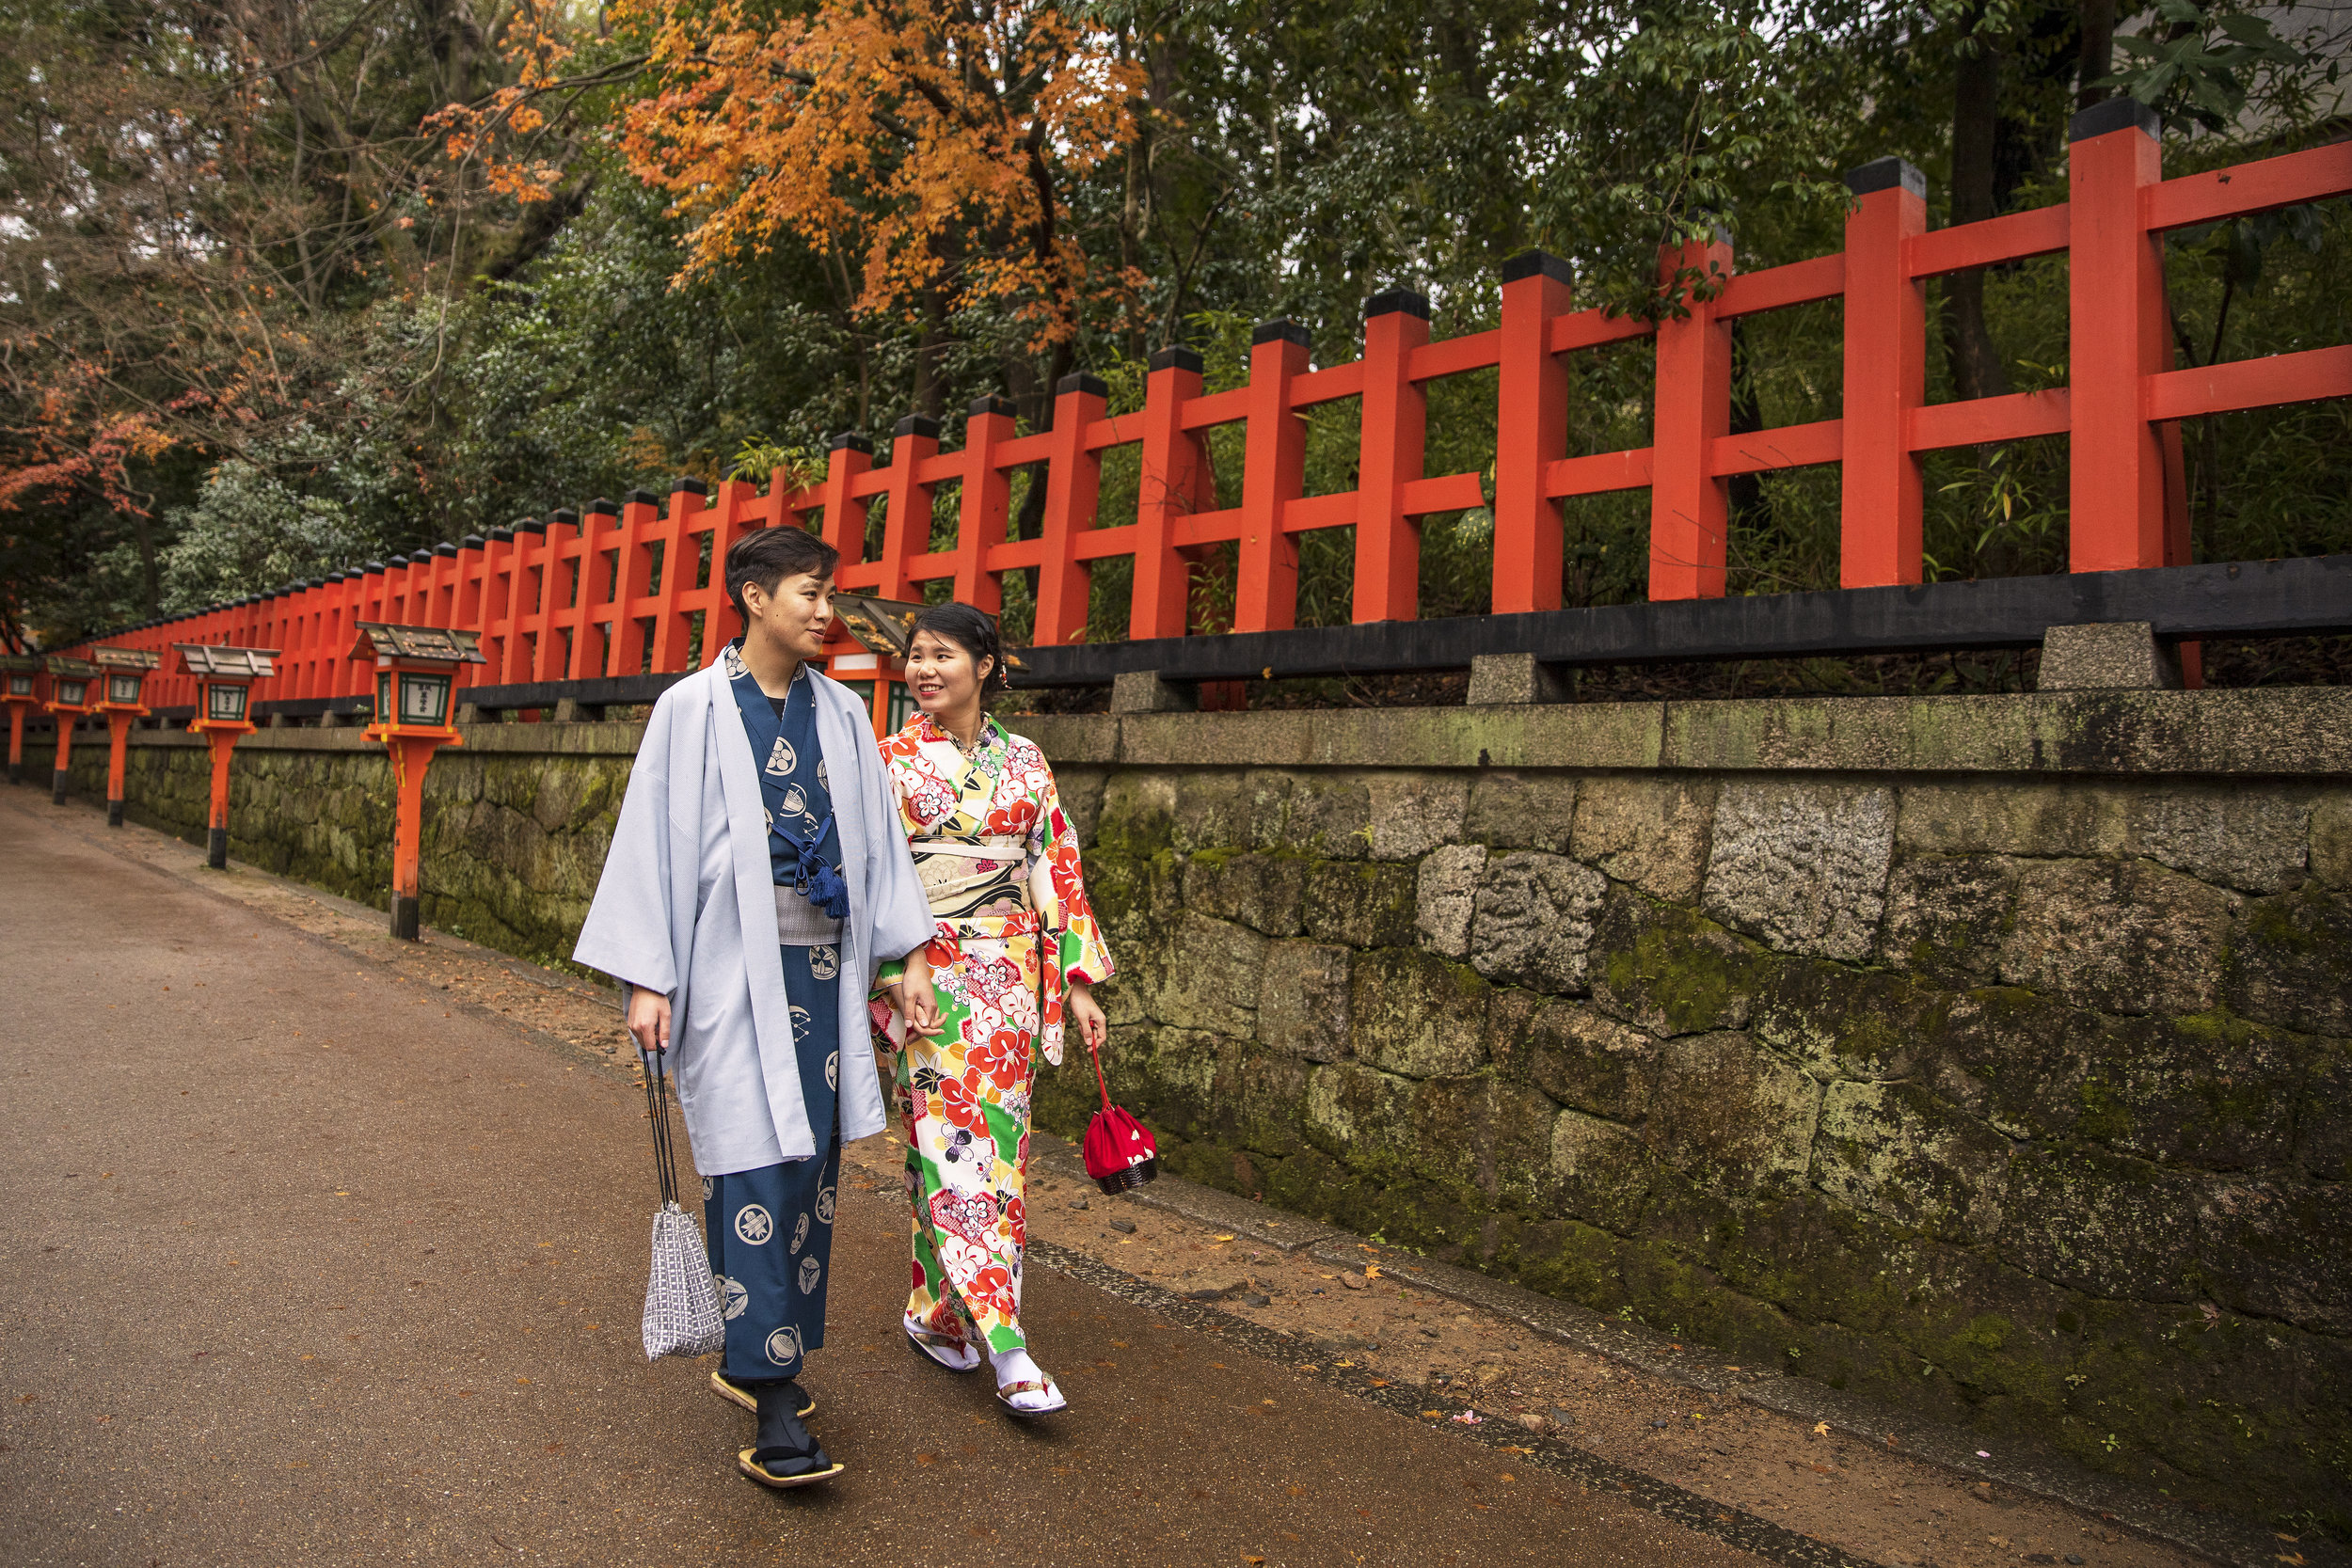 Photo by: Shoot My Travel Photographer Agung in Kyoto